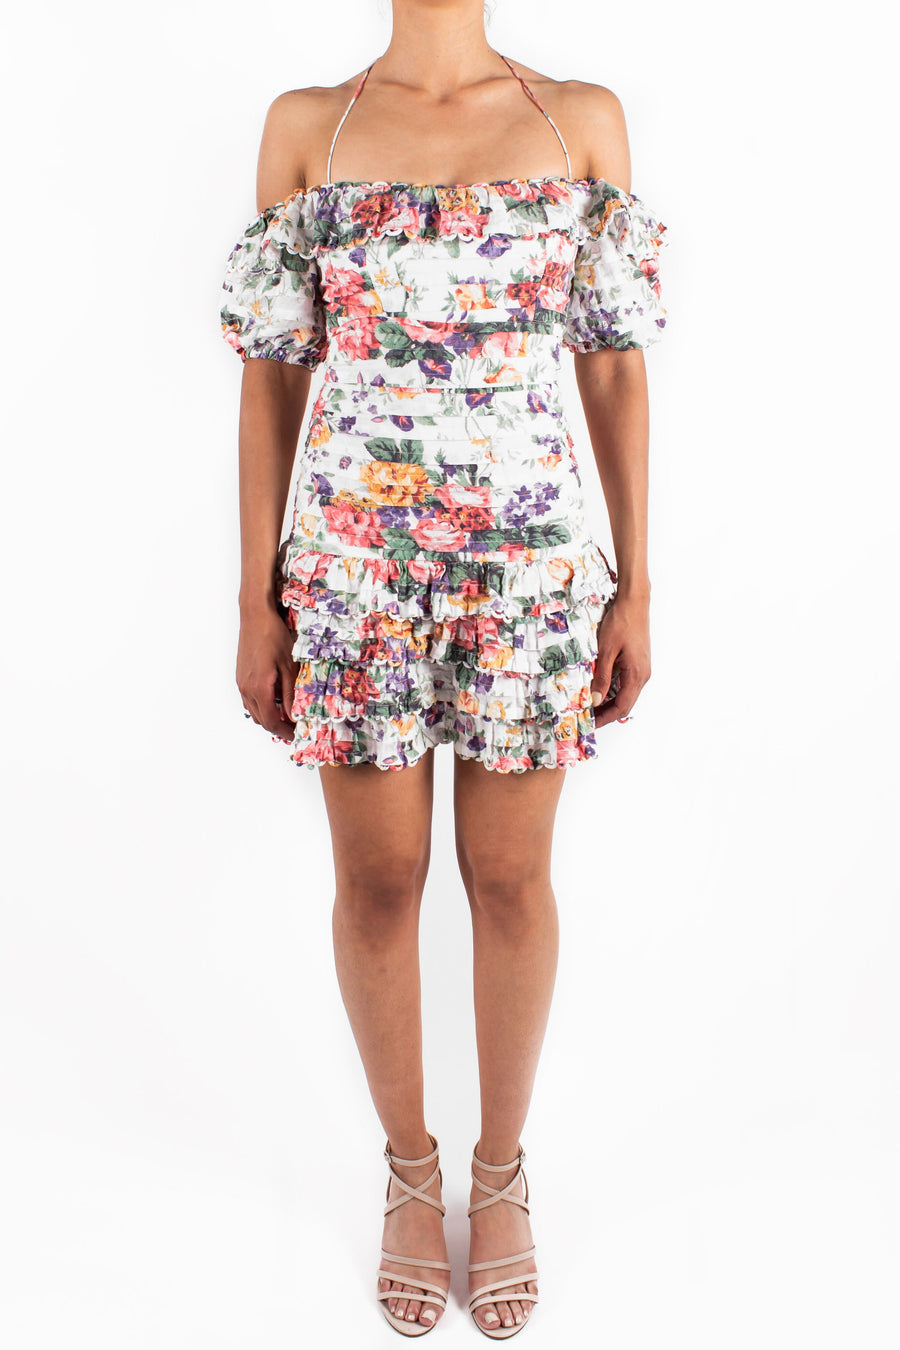 Allia Pintuck Short Dress White Floral Front